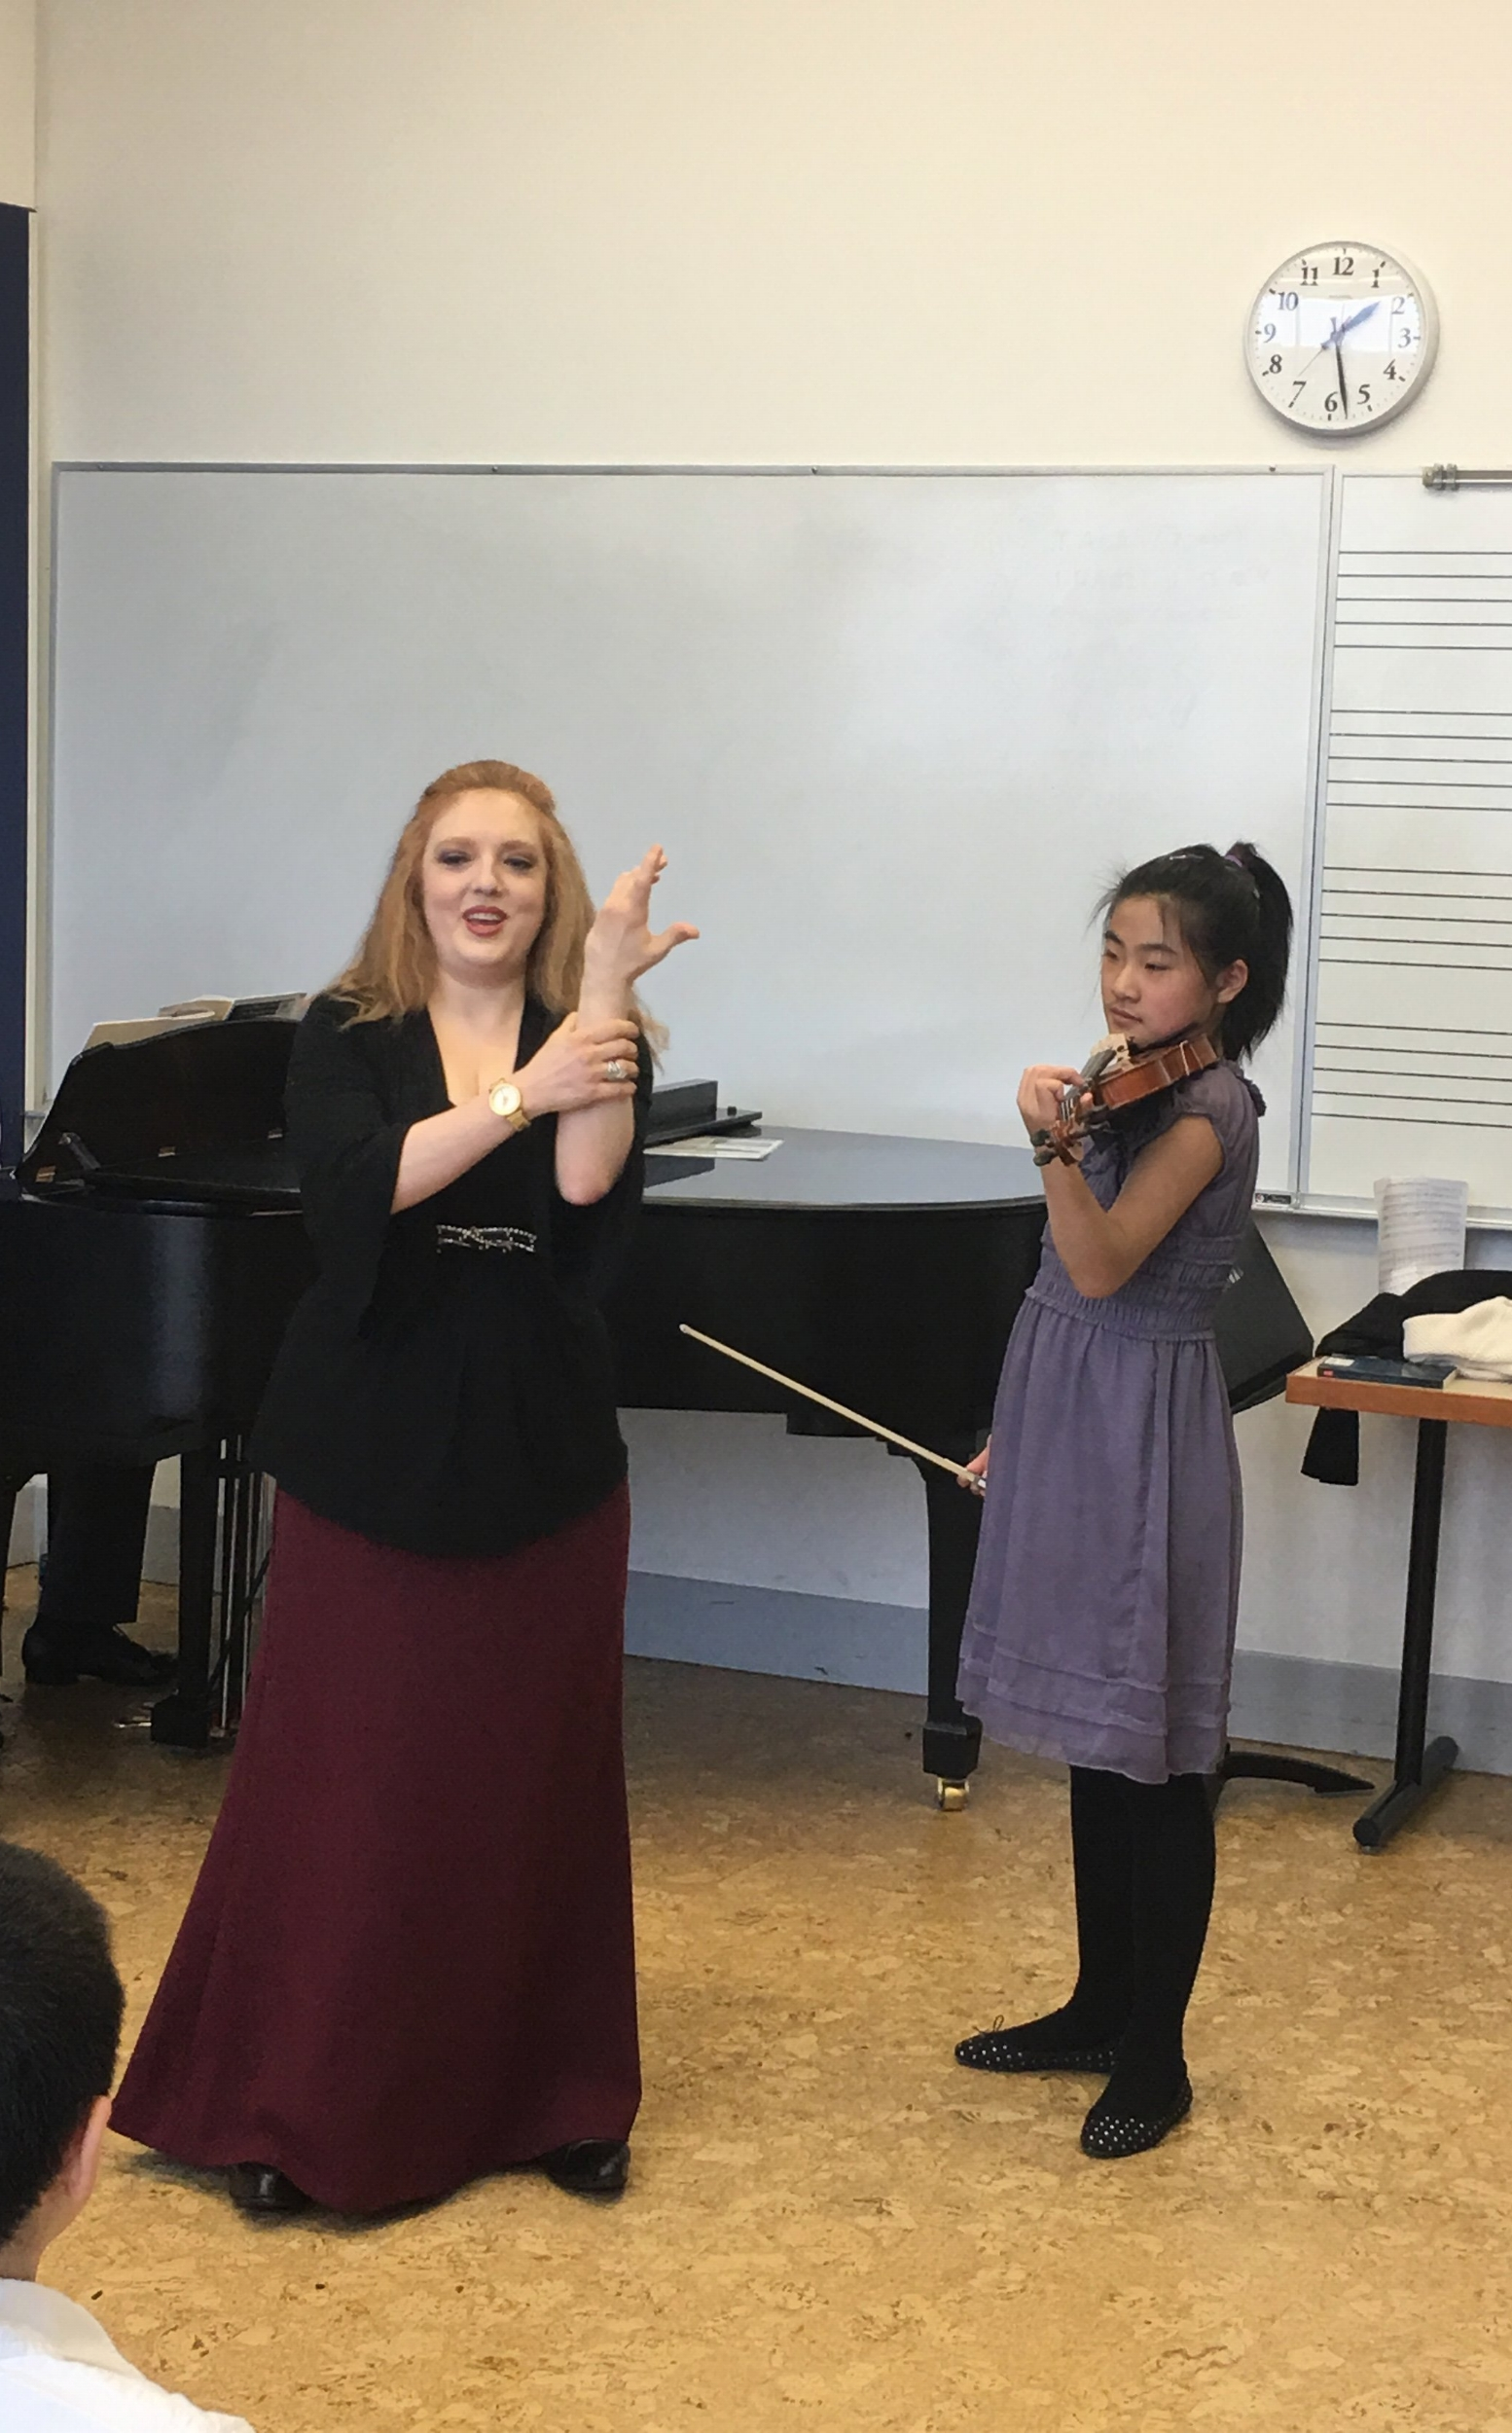 Angela learns about some of the odd ways violinists must contort themselves!